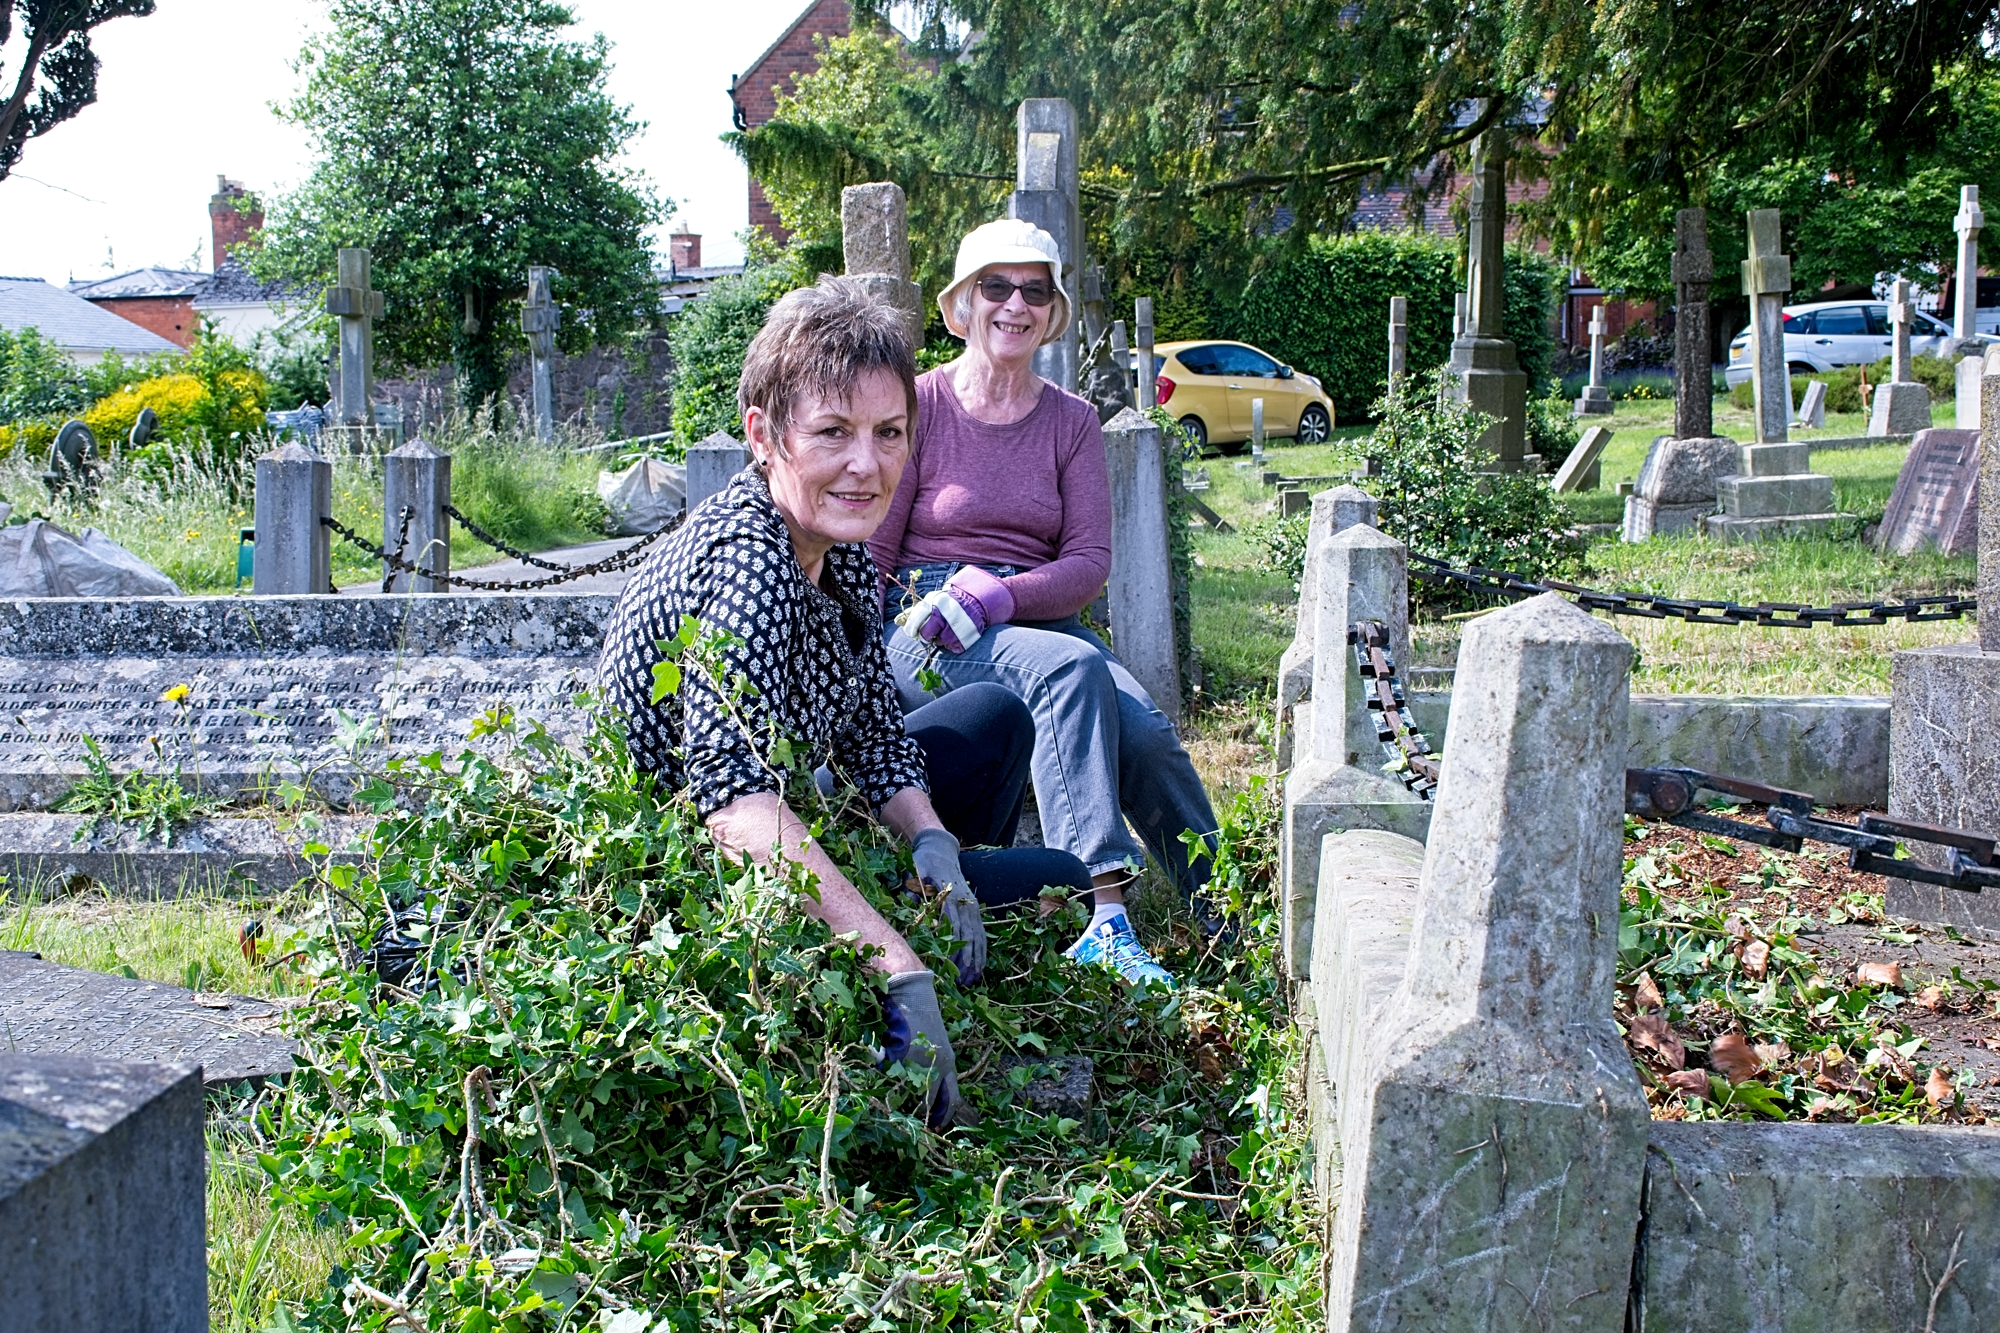 Clearing ivy around gravestones